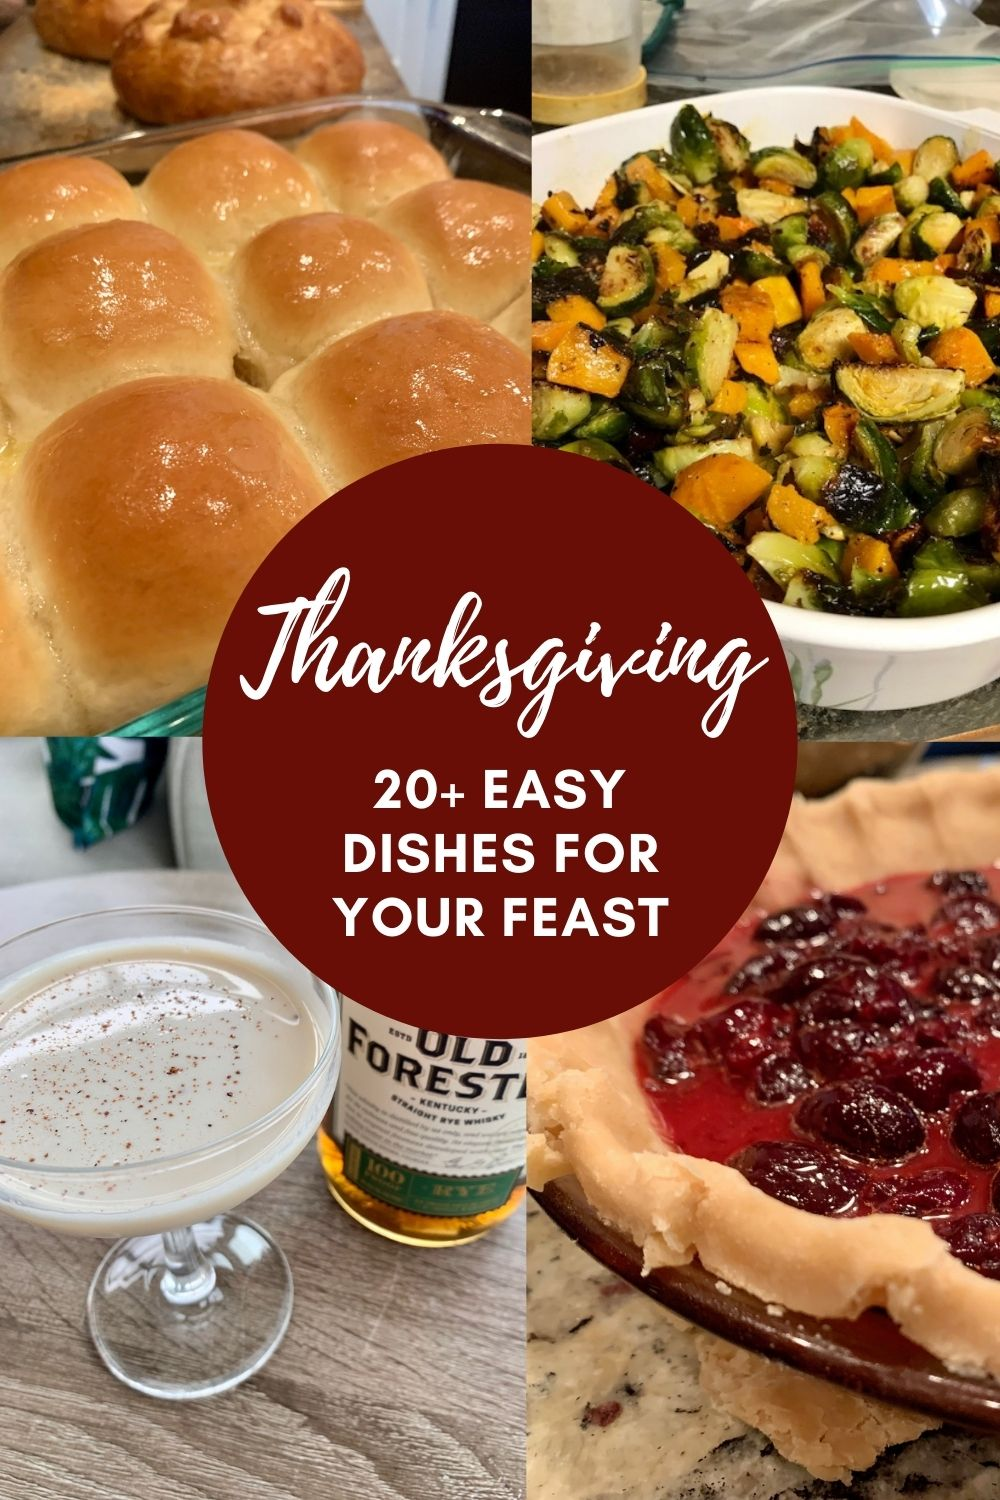 20+ of the Best Thanksgiving Recipes | These are my family's tried and true dishes, and great easy Thanksgiving recipes for your own feast if you're looking for ideas. From Thanksgiving side dishes to desserts, breads, and even cocktails, I've got you covered. The best holiday recipes for any size of gathering. #thanksgiving #bestthanksgiving #holidayrecipes